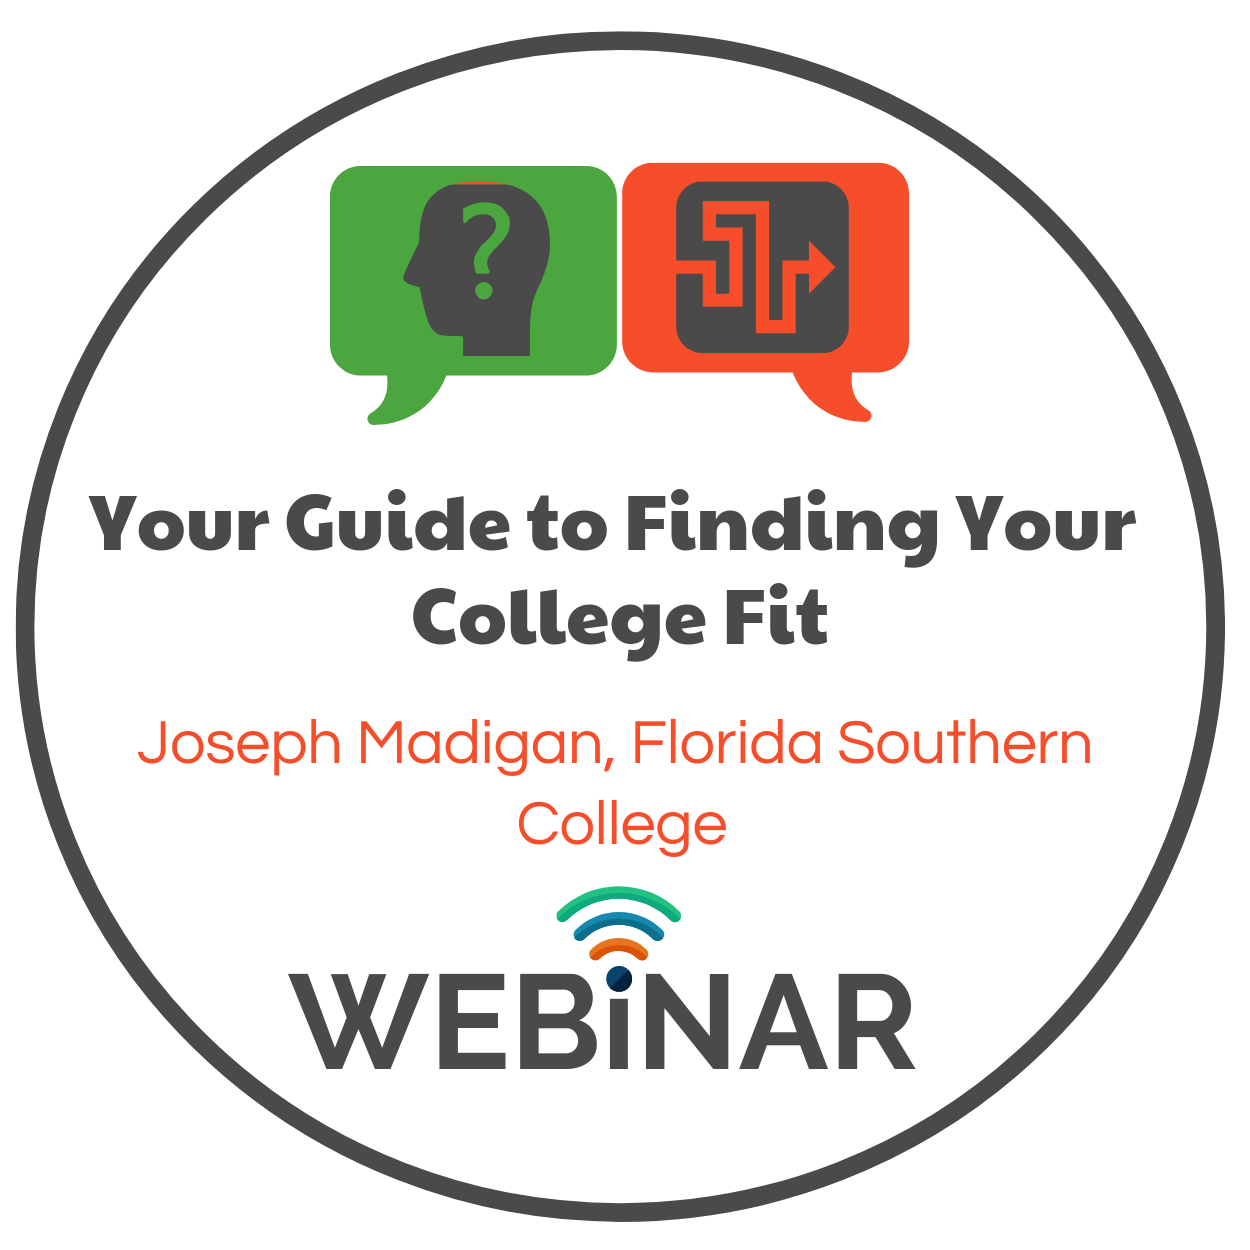 Finding the right college for your student can put them on the path to success. Joseph Madigan shares his knowledge on college selection and important factors all parents and students must consider.